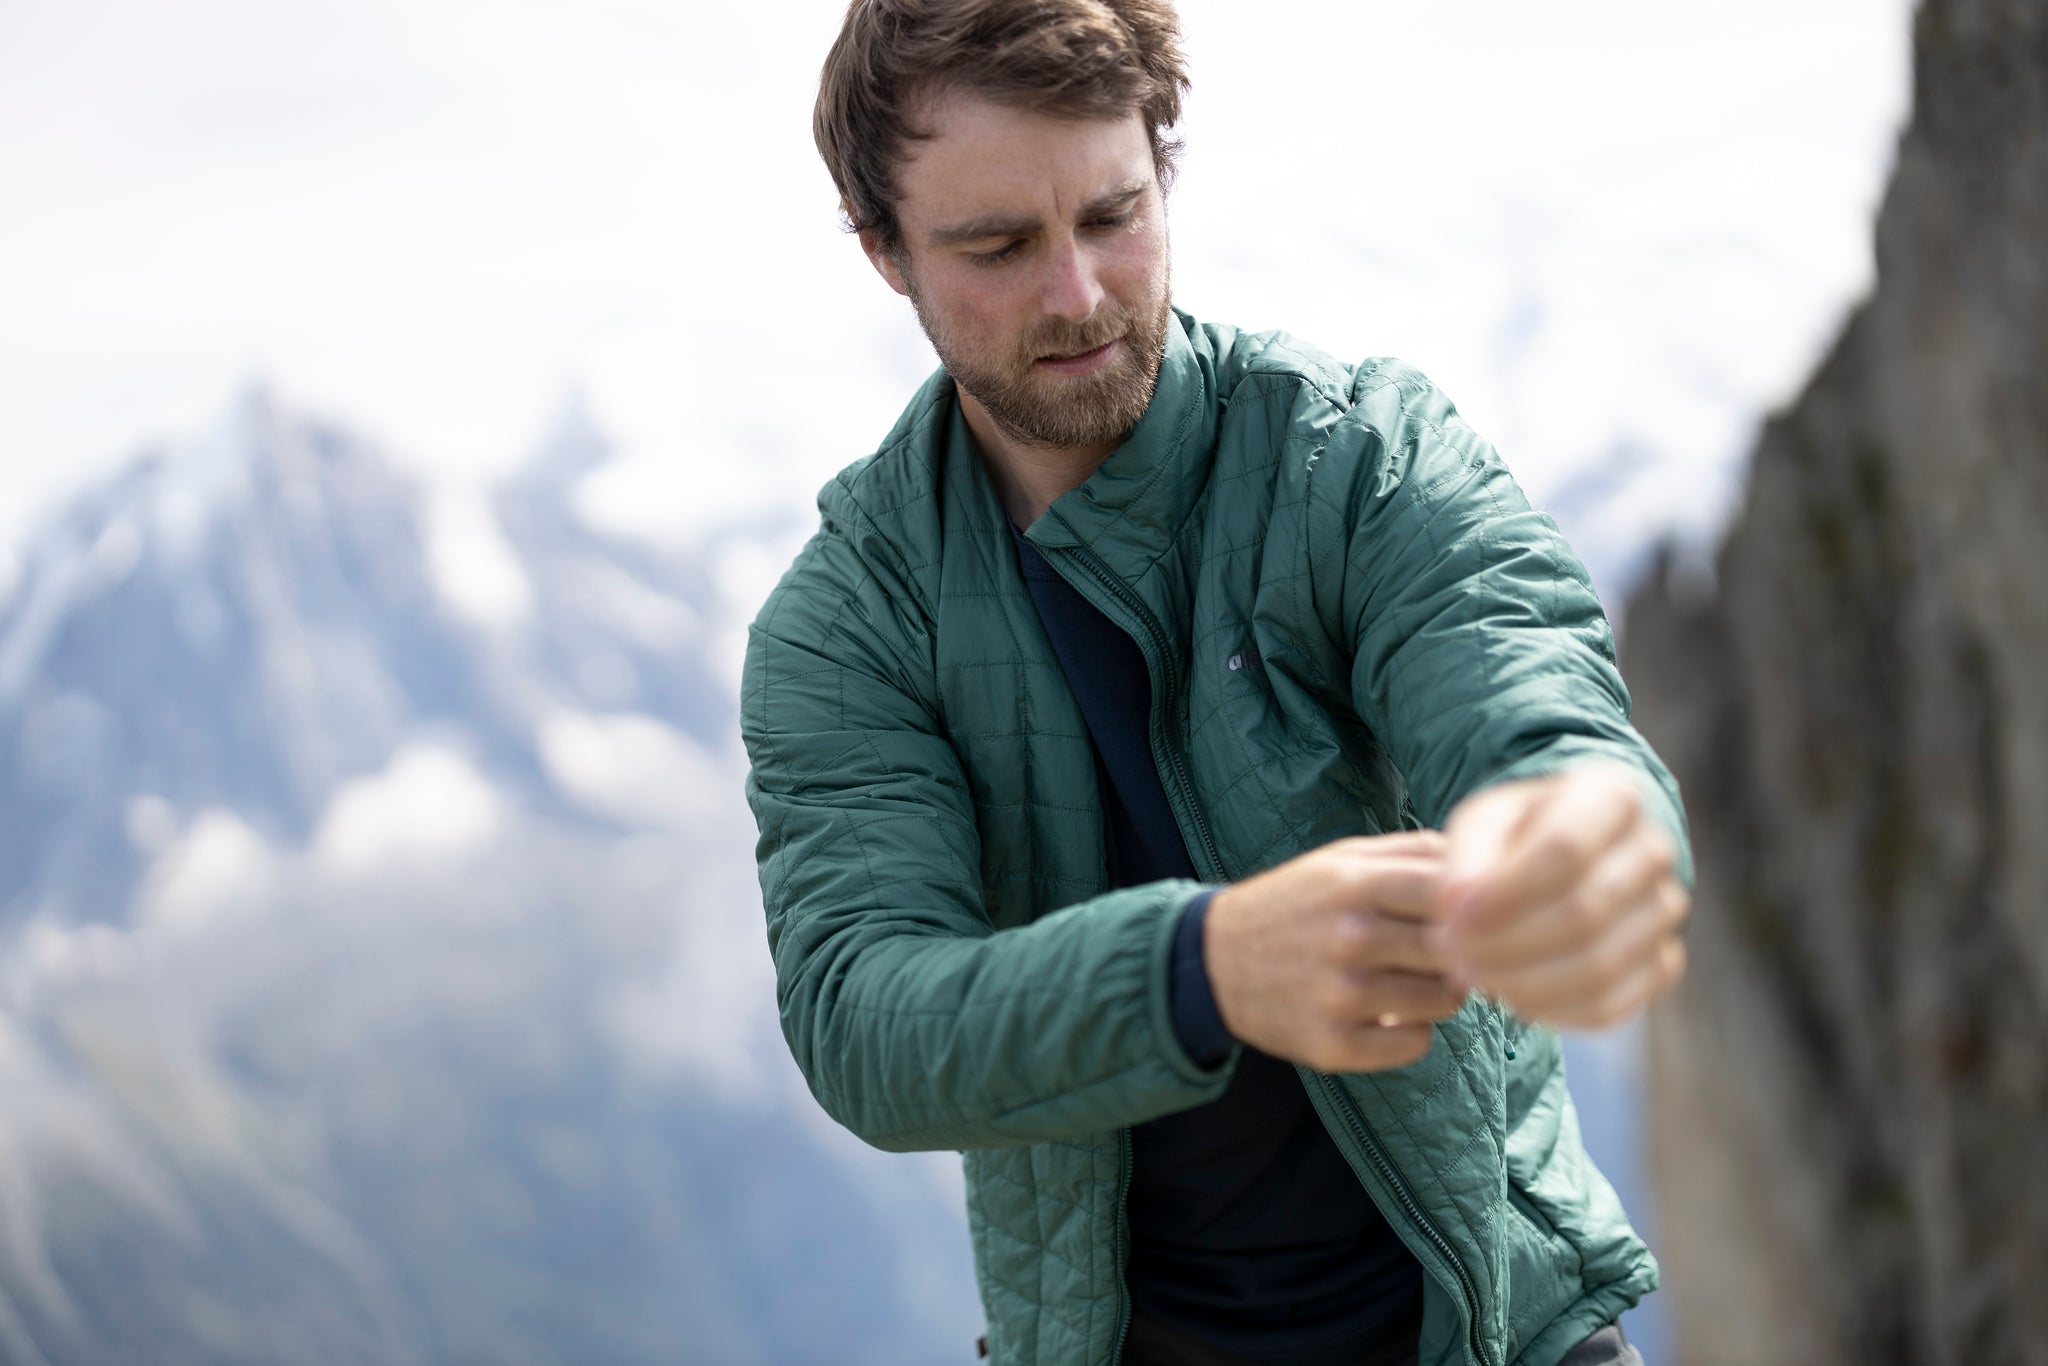 A man pulling on the Heiko Primaloft lightweight insulated jacket with quilted baffles